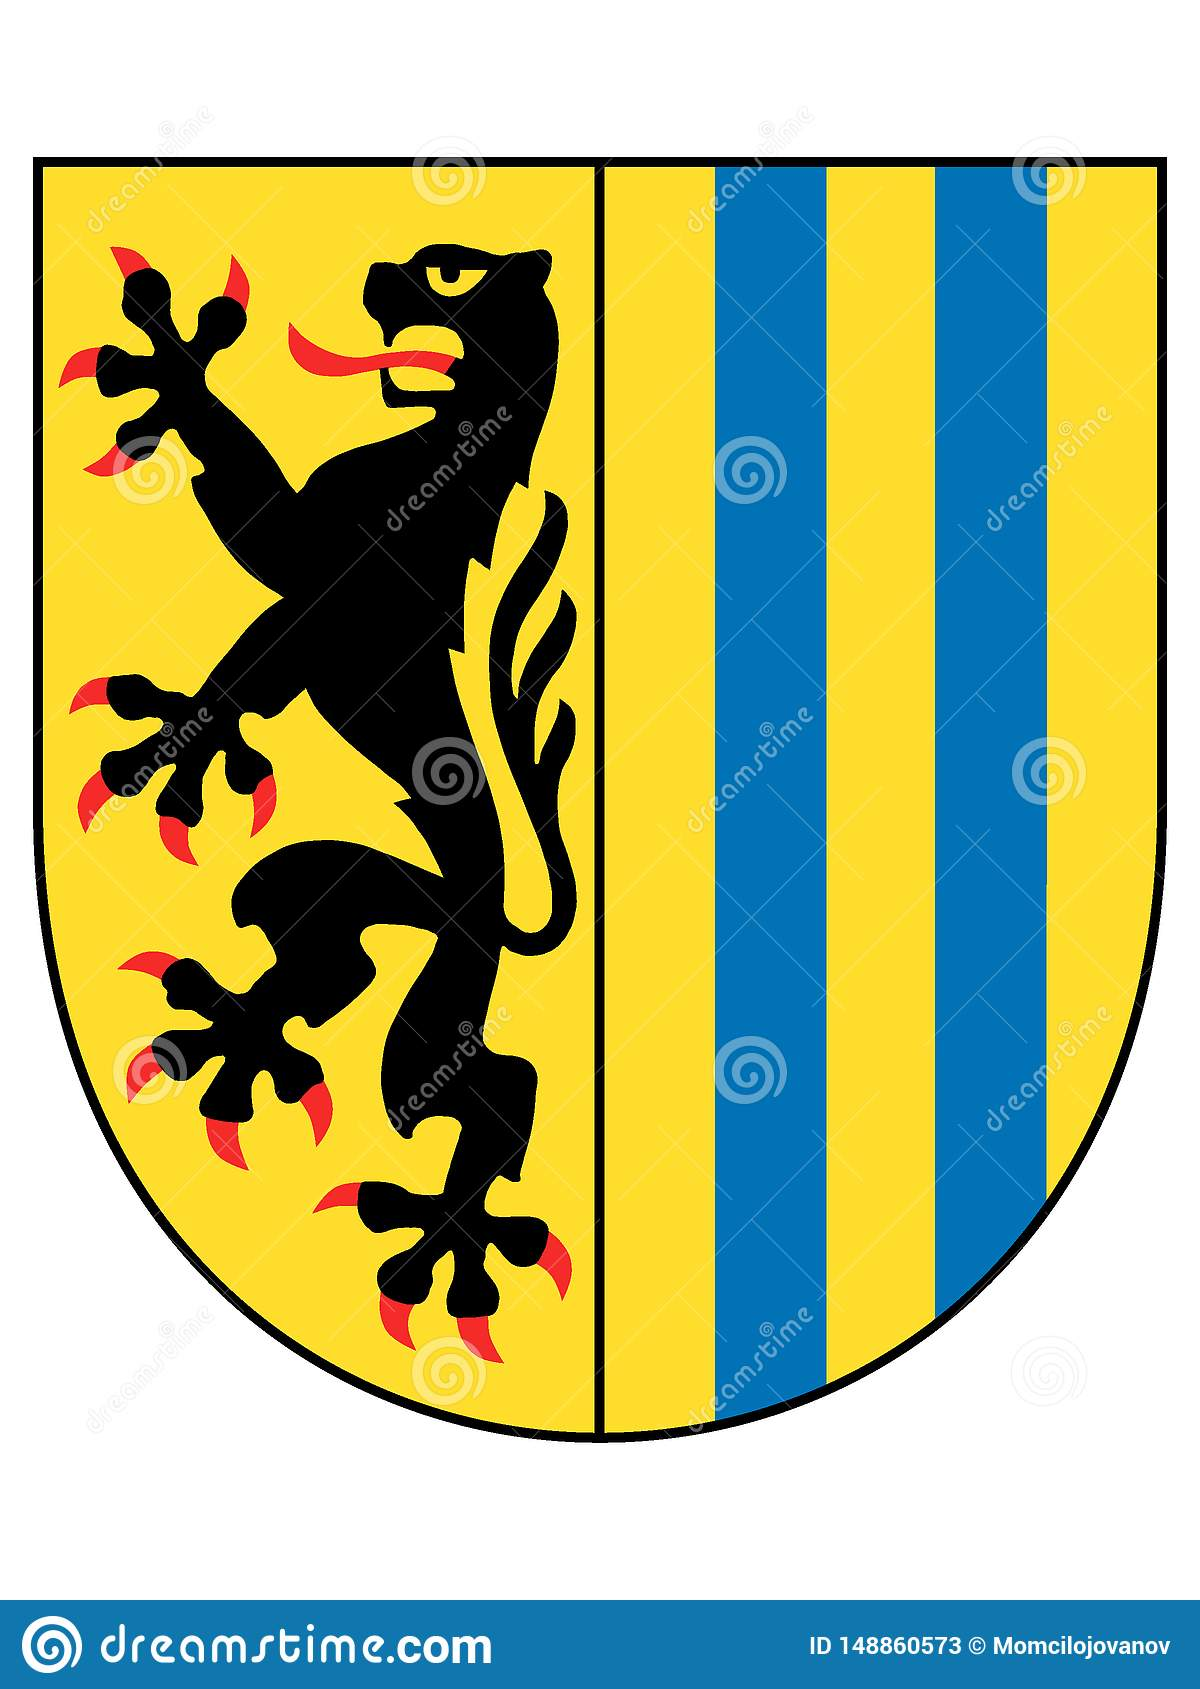 Coat Of Arms Of The German City Of Leipzig Stock Vector Illustration Of Munich Arms 148860573